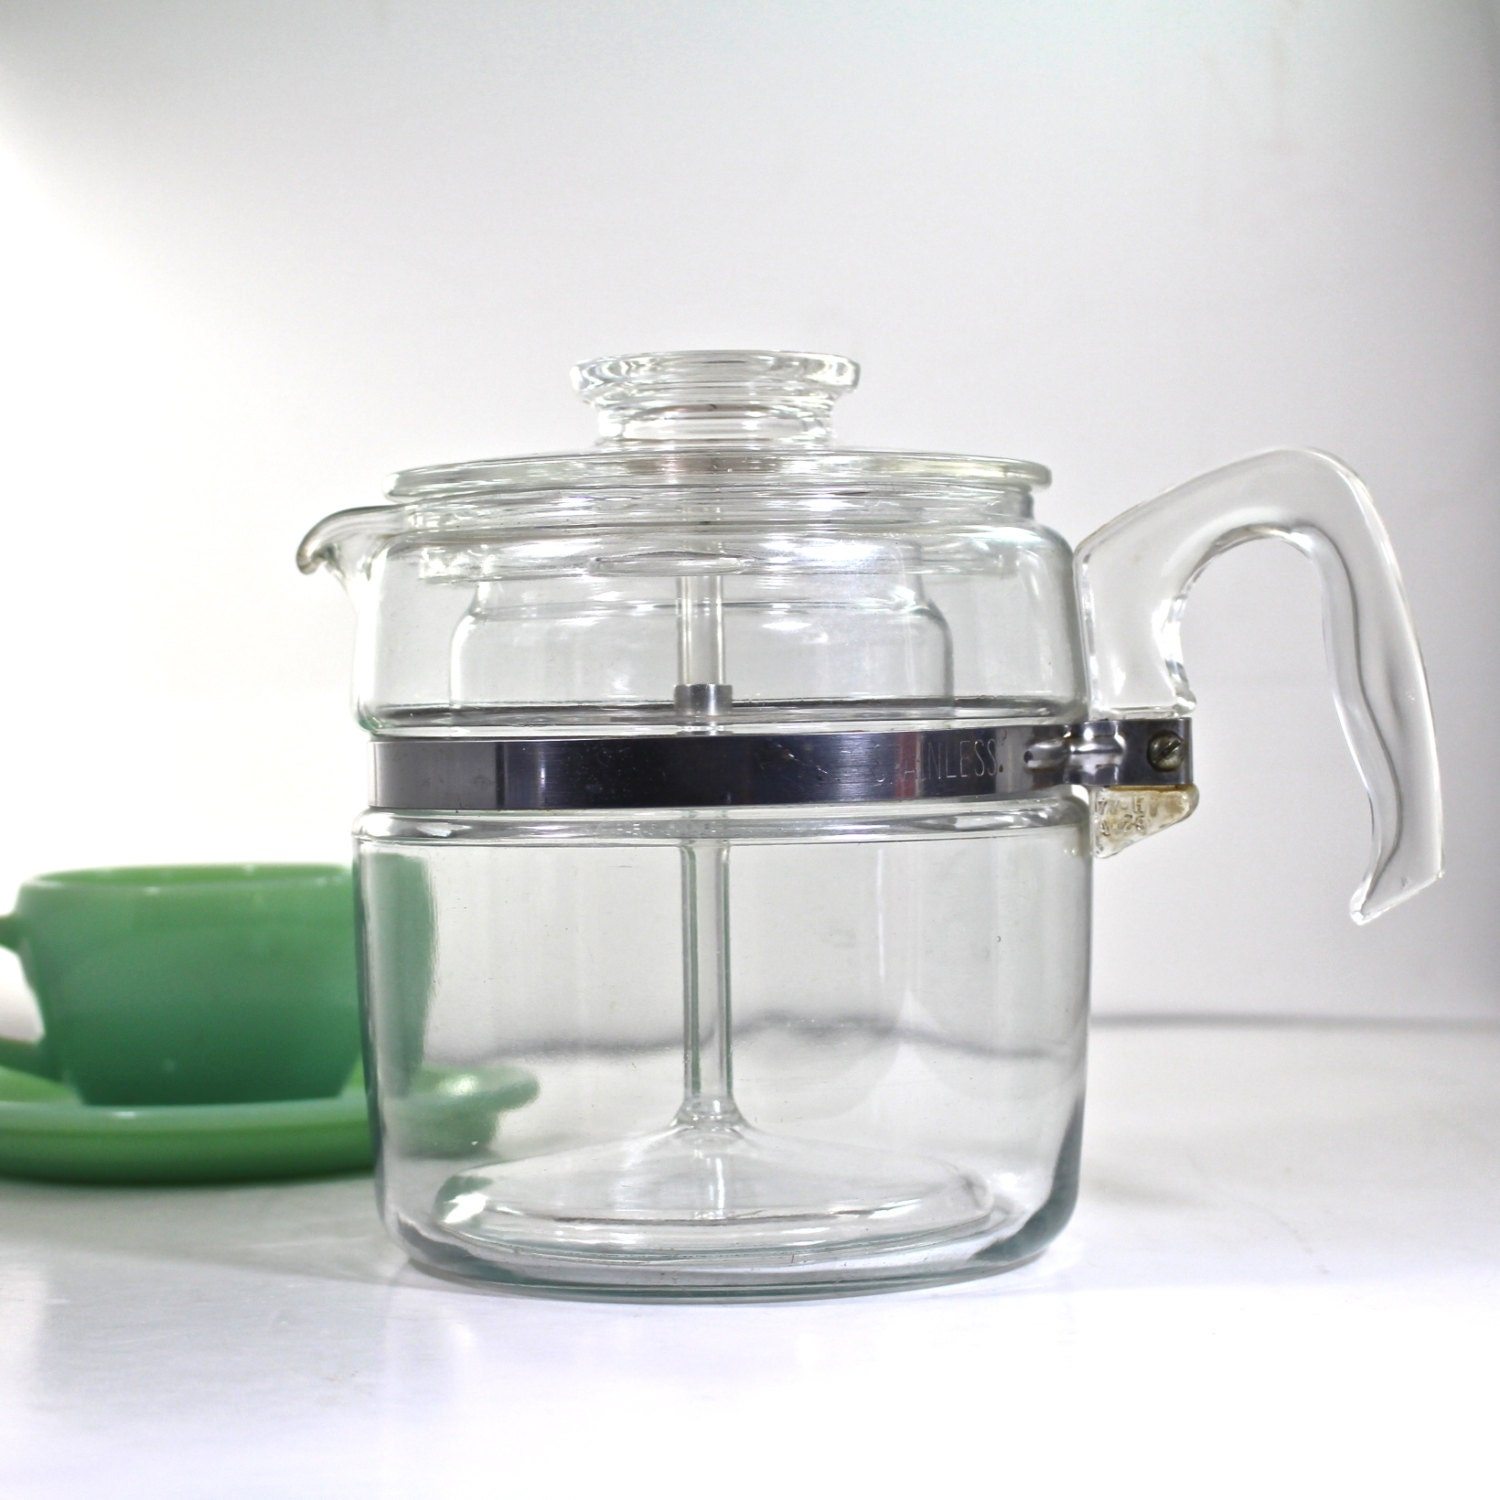 Pyrex Coffee Maker How To Use : Pyrex Flameware 6 cup Coffee Maker